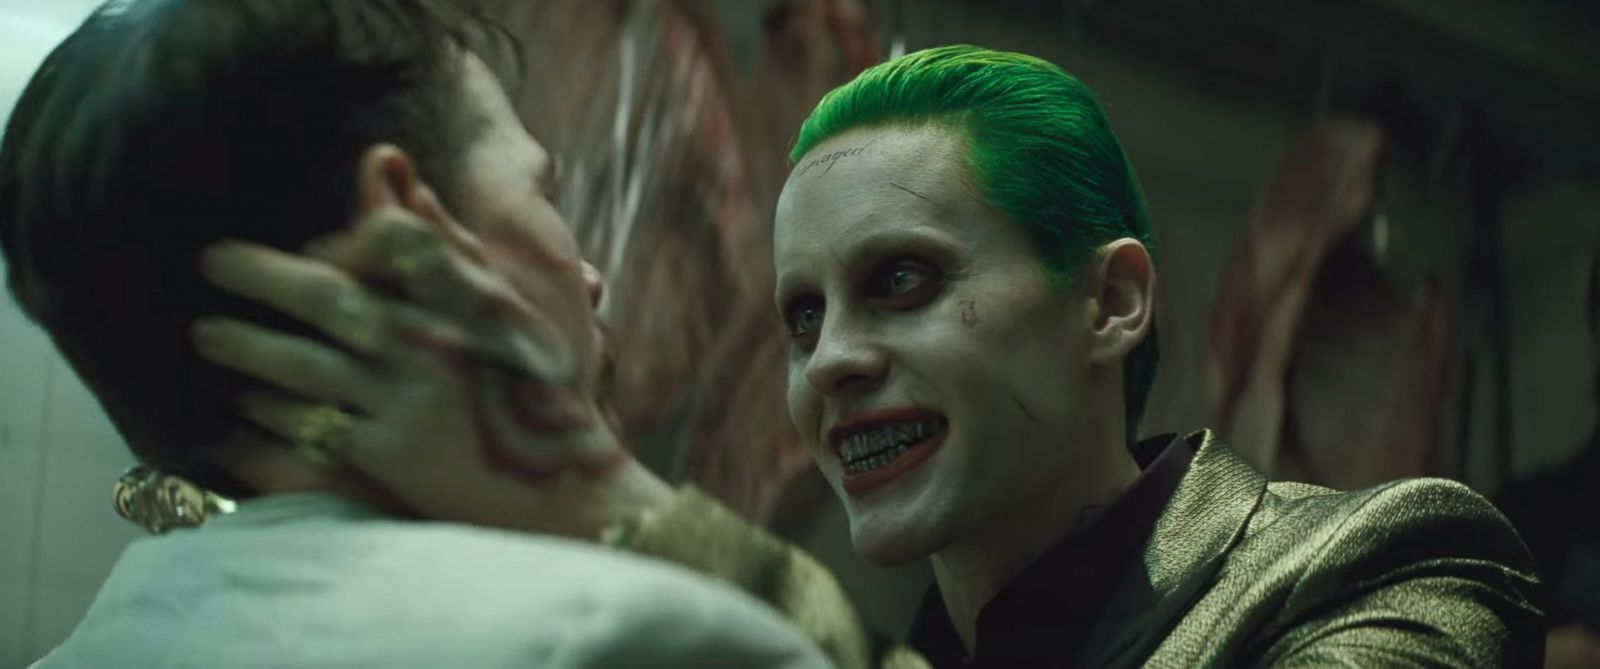 """PHOTO: Jared Ledo is pictured in an image made from the official """"Suicide Squad"""" trailer posted to YouTube on Jan. 19, 2016."""